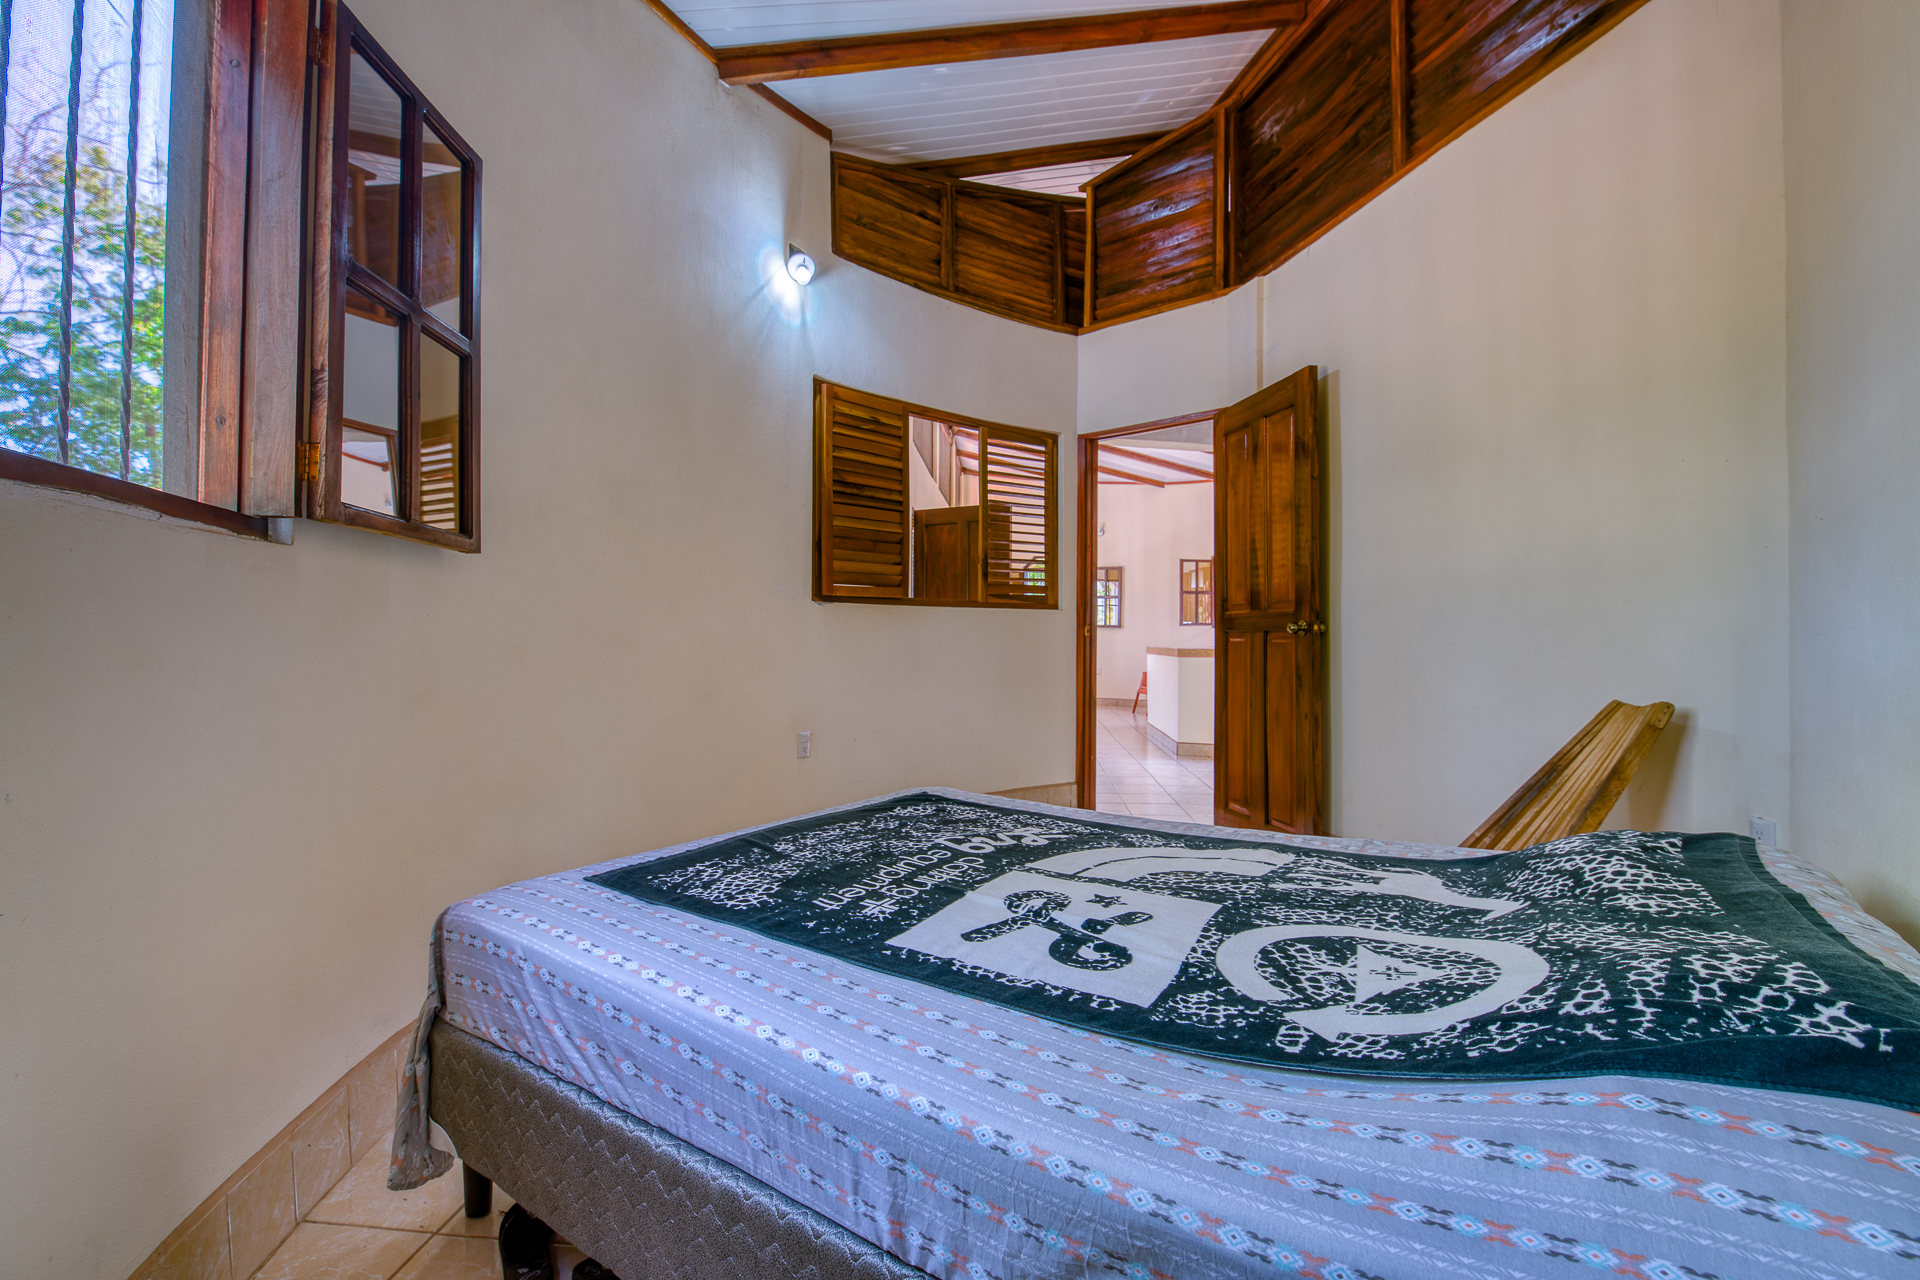 https://property-nicaragua.com/pedrodev/wp-content/uploads/2019/08/Quaint-Home-in-Nature-with-Rental-Units-San-Juan-del-Sur-Real-Estate-3.jpg